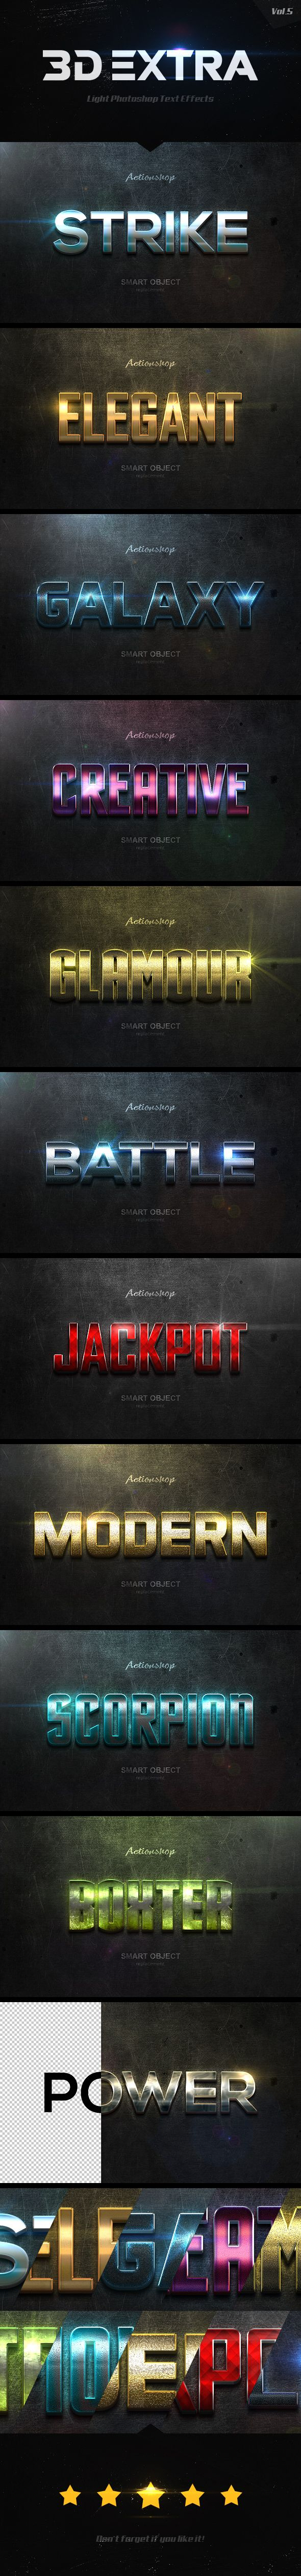 New 3D Extra Light Text Effects for Photoshop